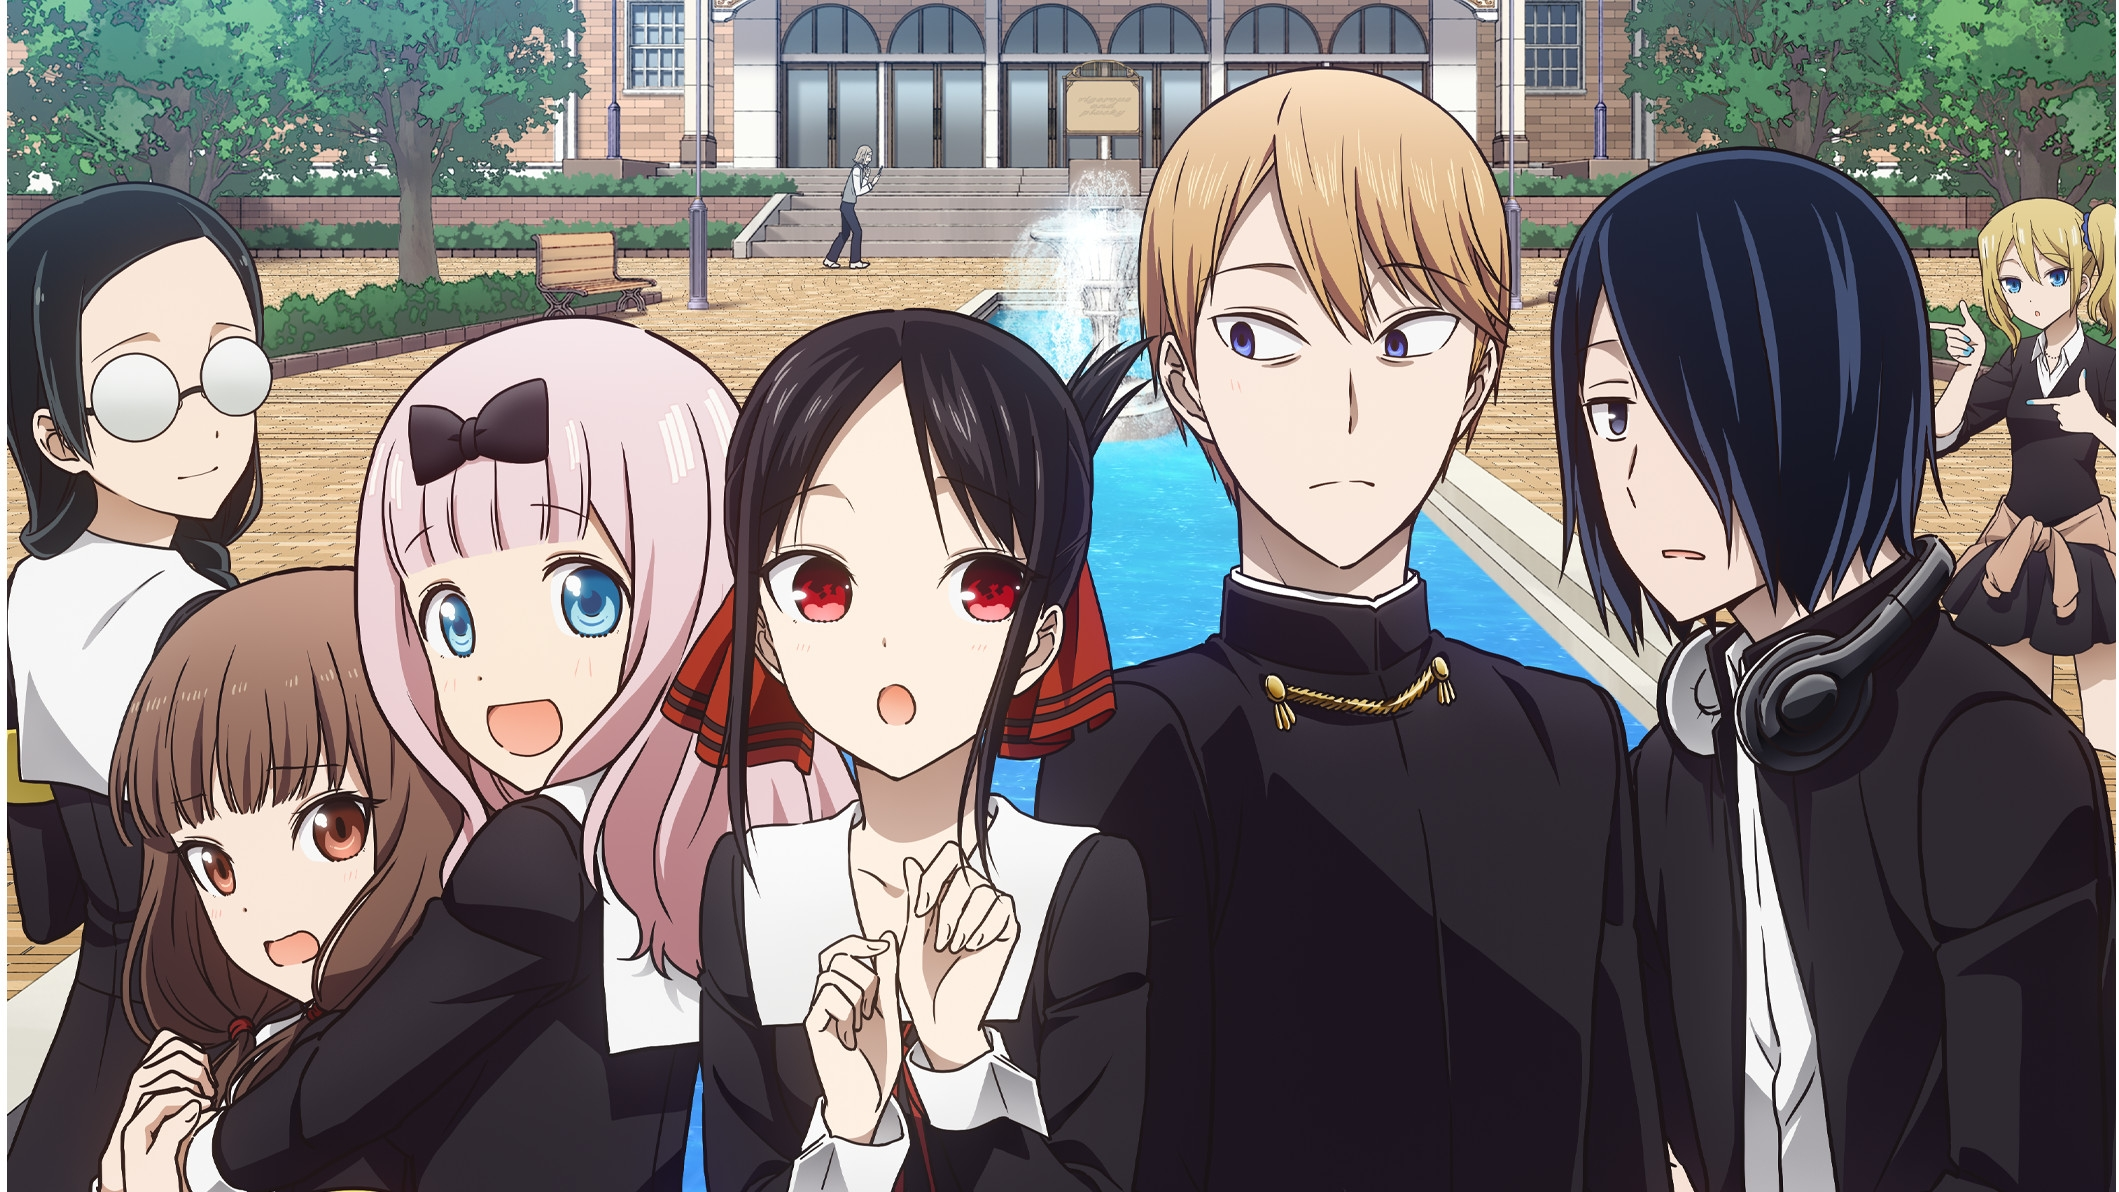 Kaguya-sama: Love is War' Season 2 to Simulcast Exclusively this ...